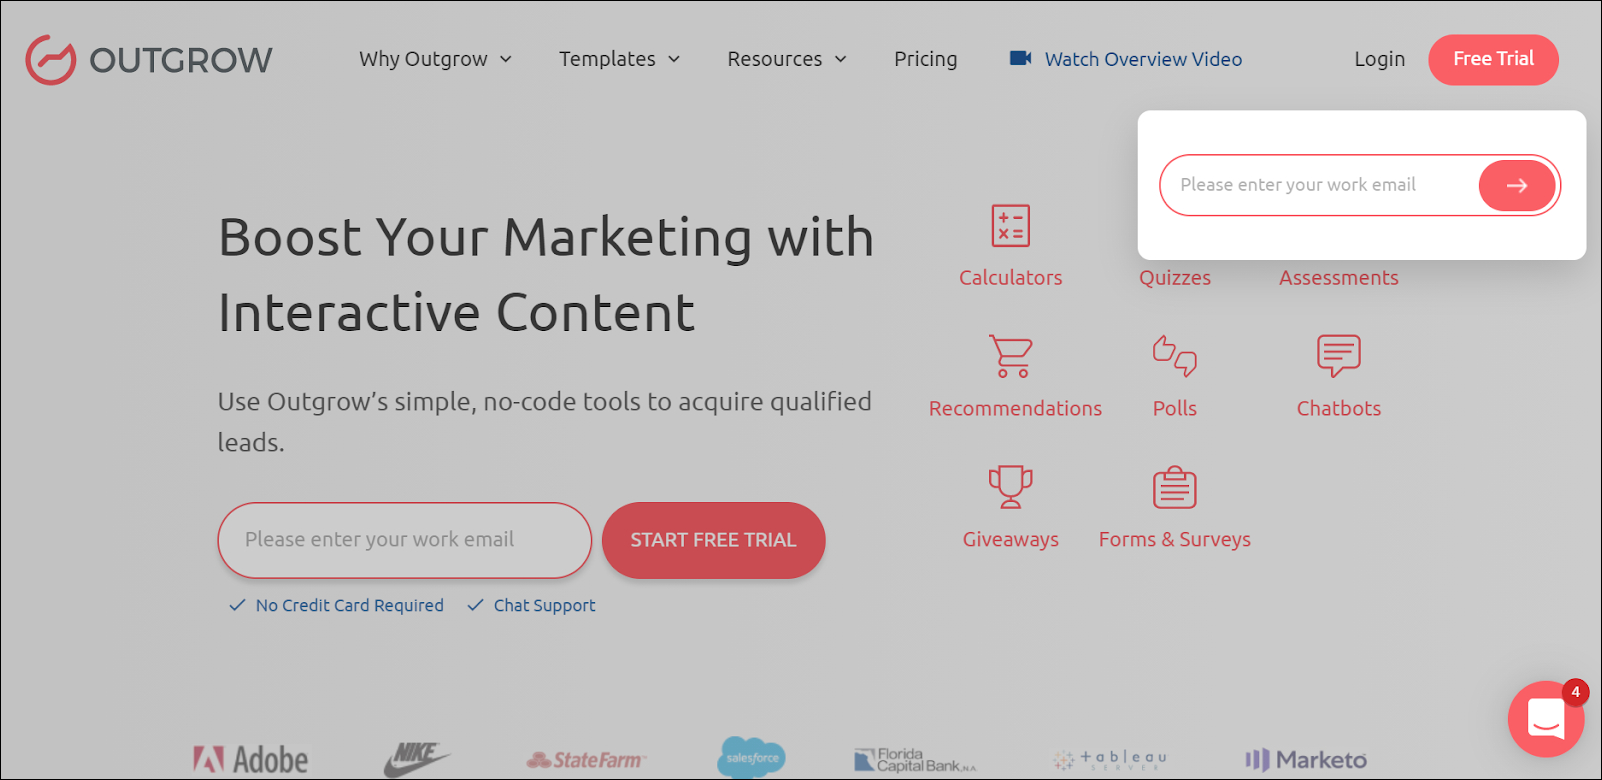 Complete Lead Generation Guide - The Beginning, Middle, and End